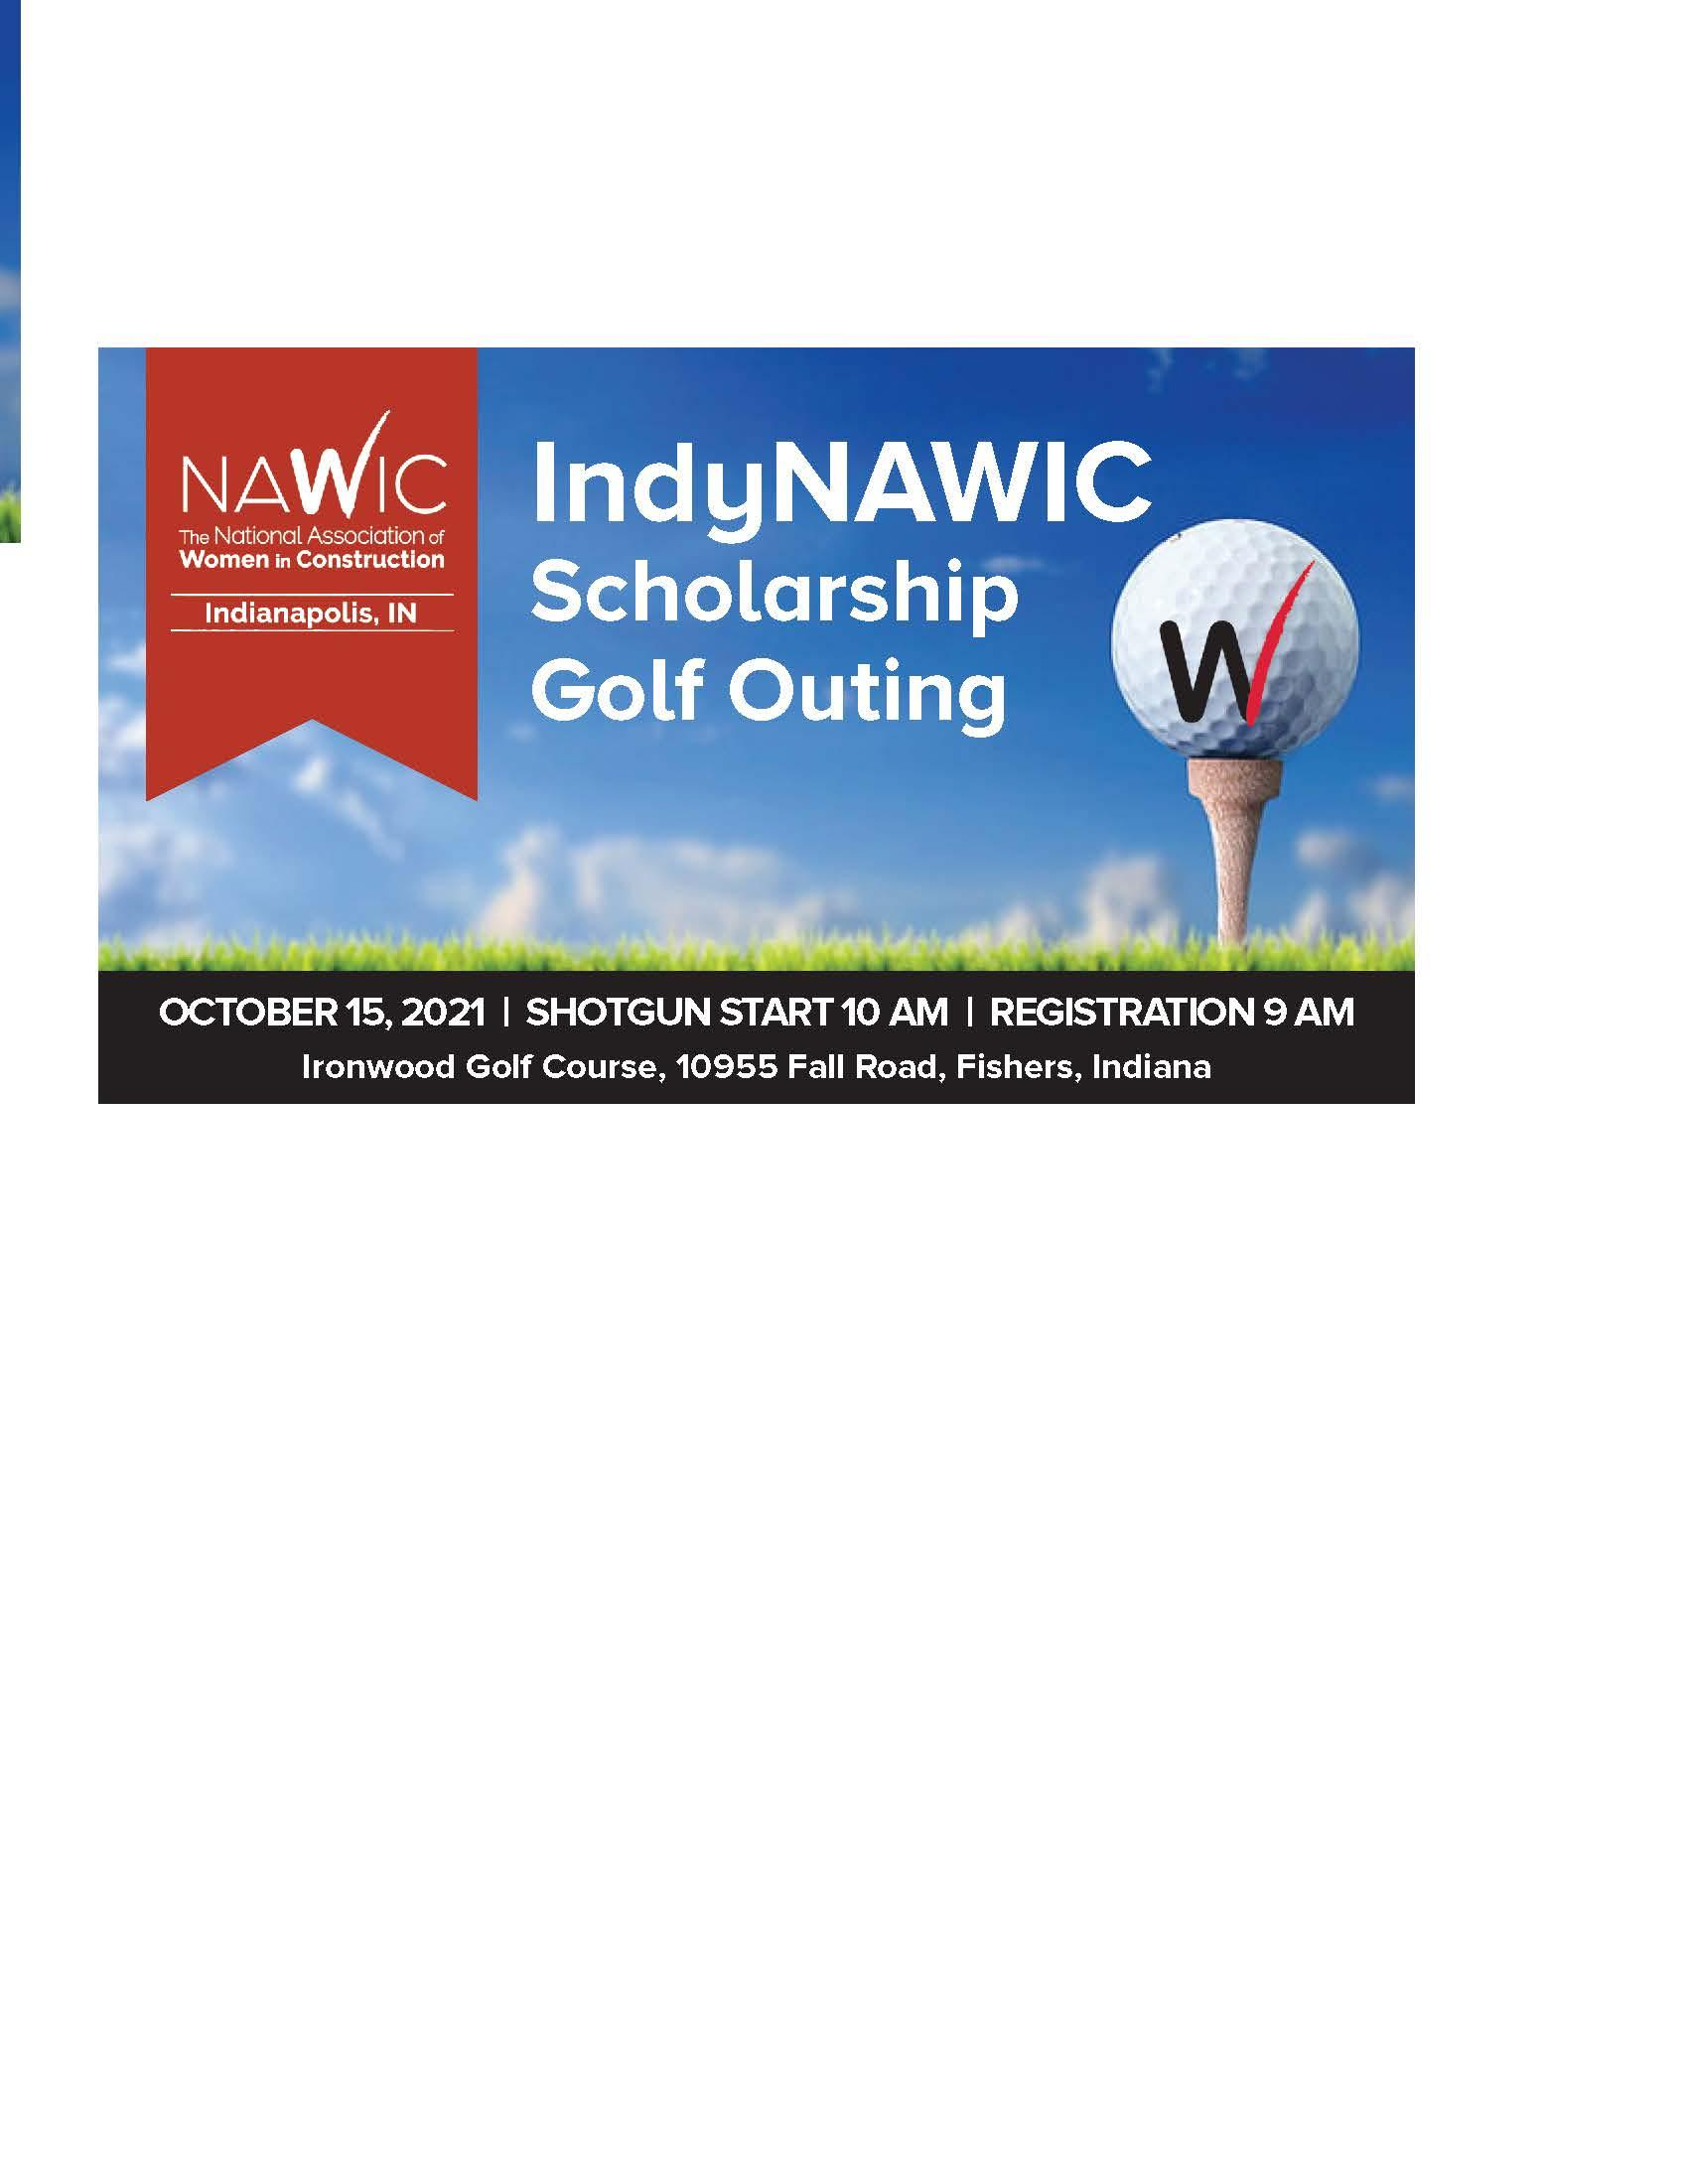 IndyNAWIC 2021 Scholarship Golf Outing